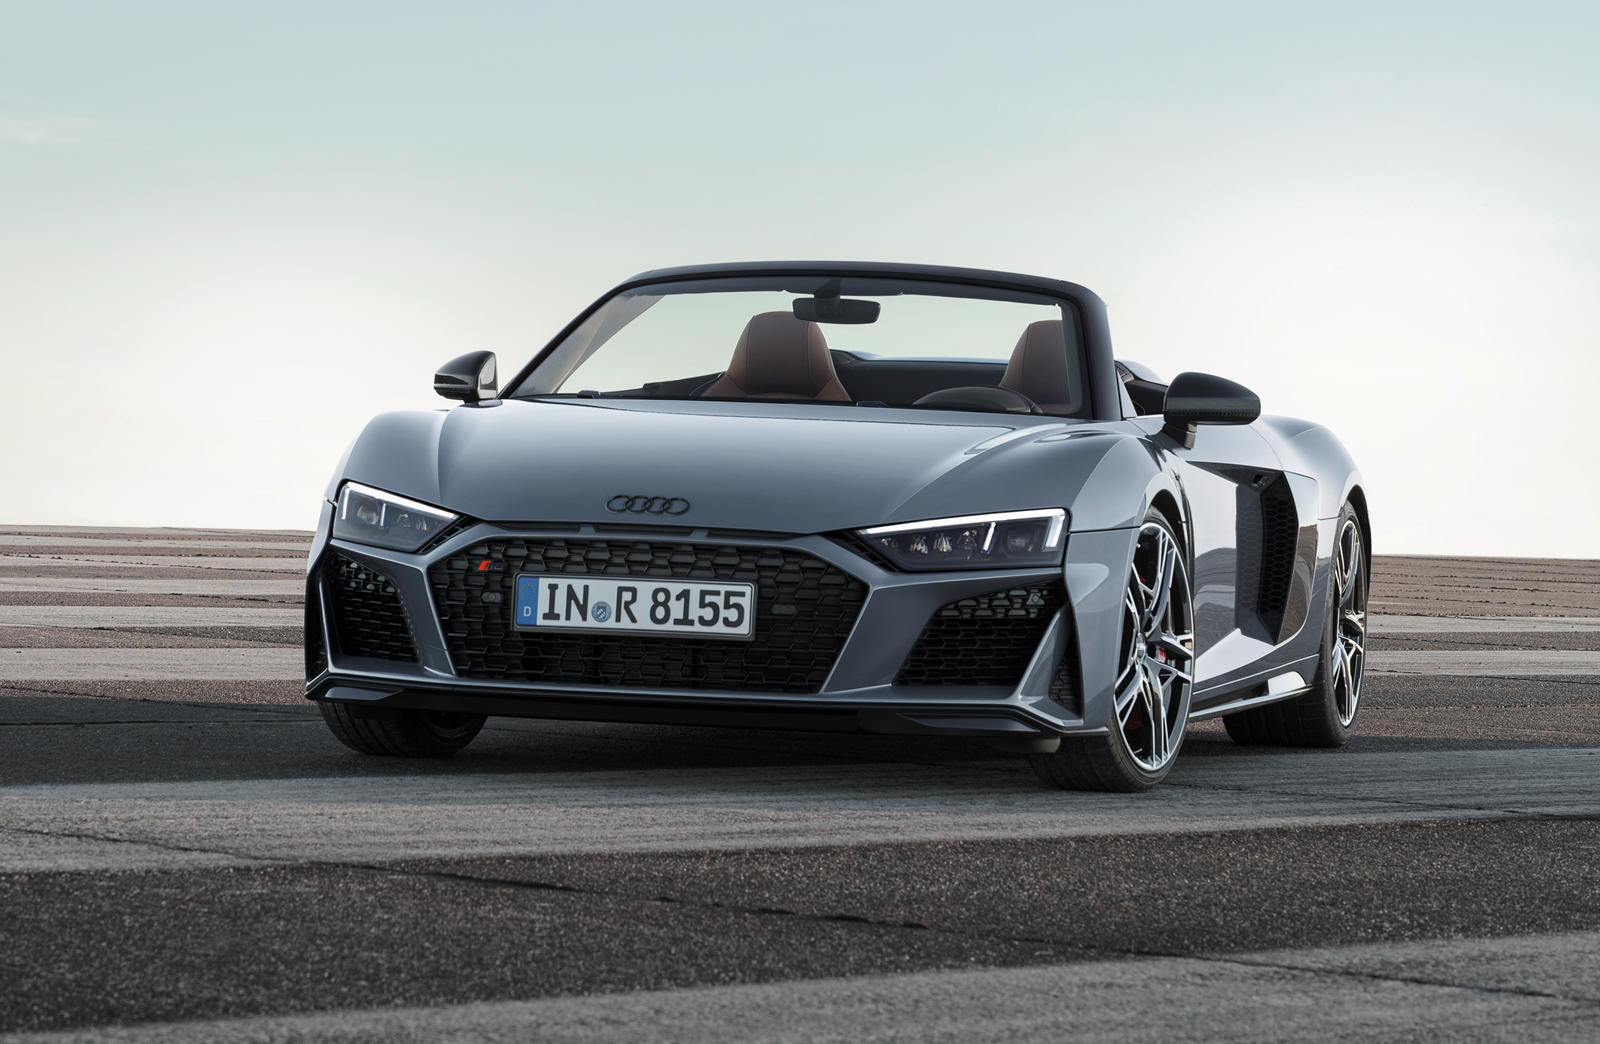 2020 Audi R8 Spyder Review Trims Specs Price New Interior Features Exterior Design And Specifications Carbuzz